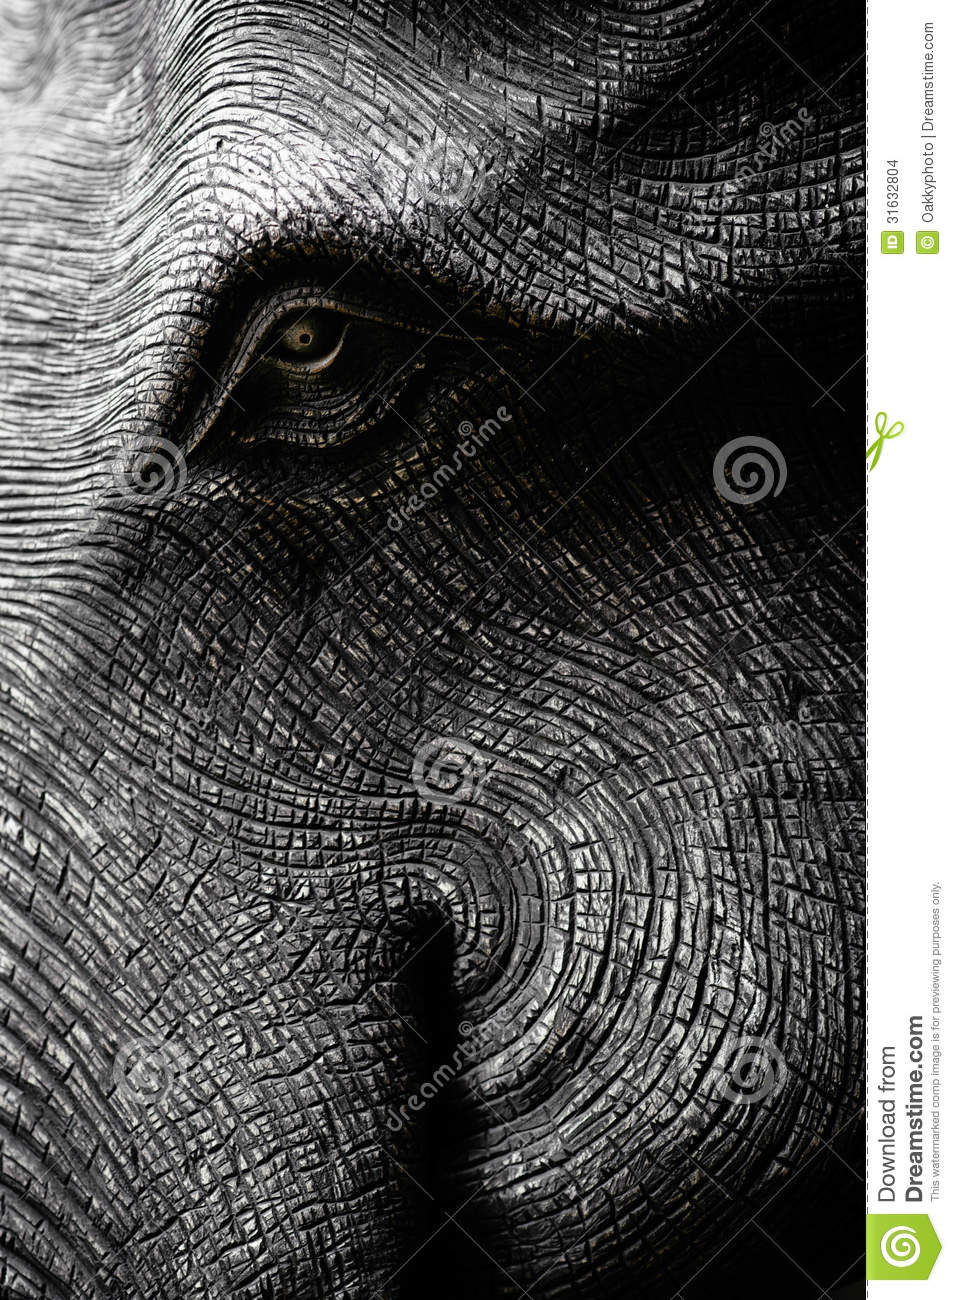 Elephant Head in Black and White